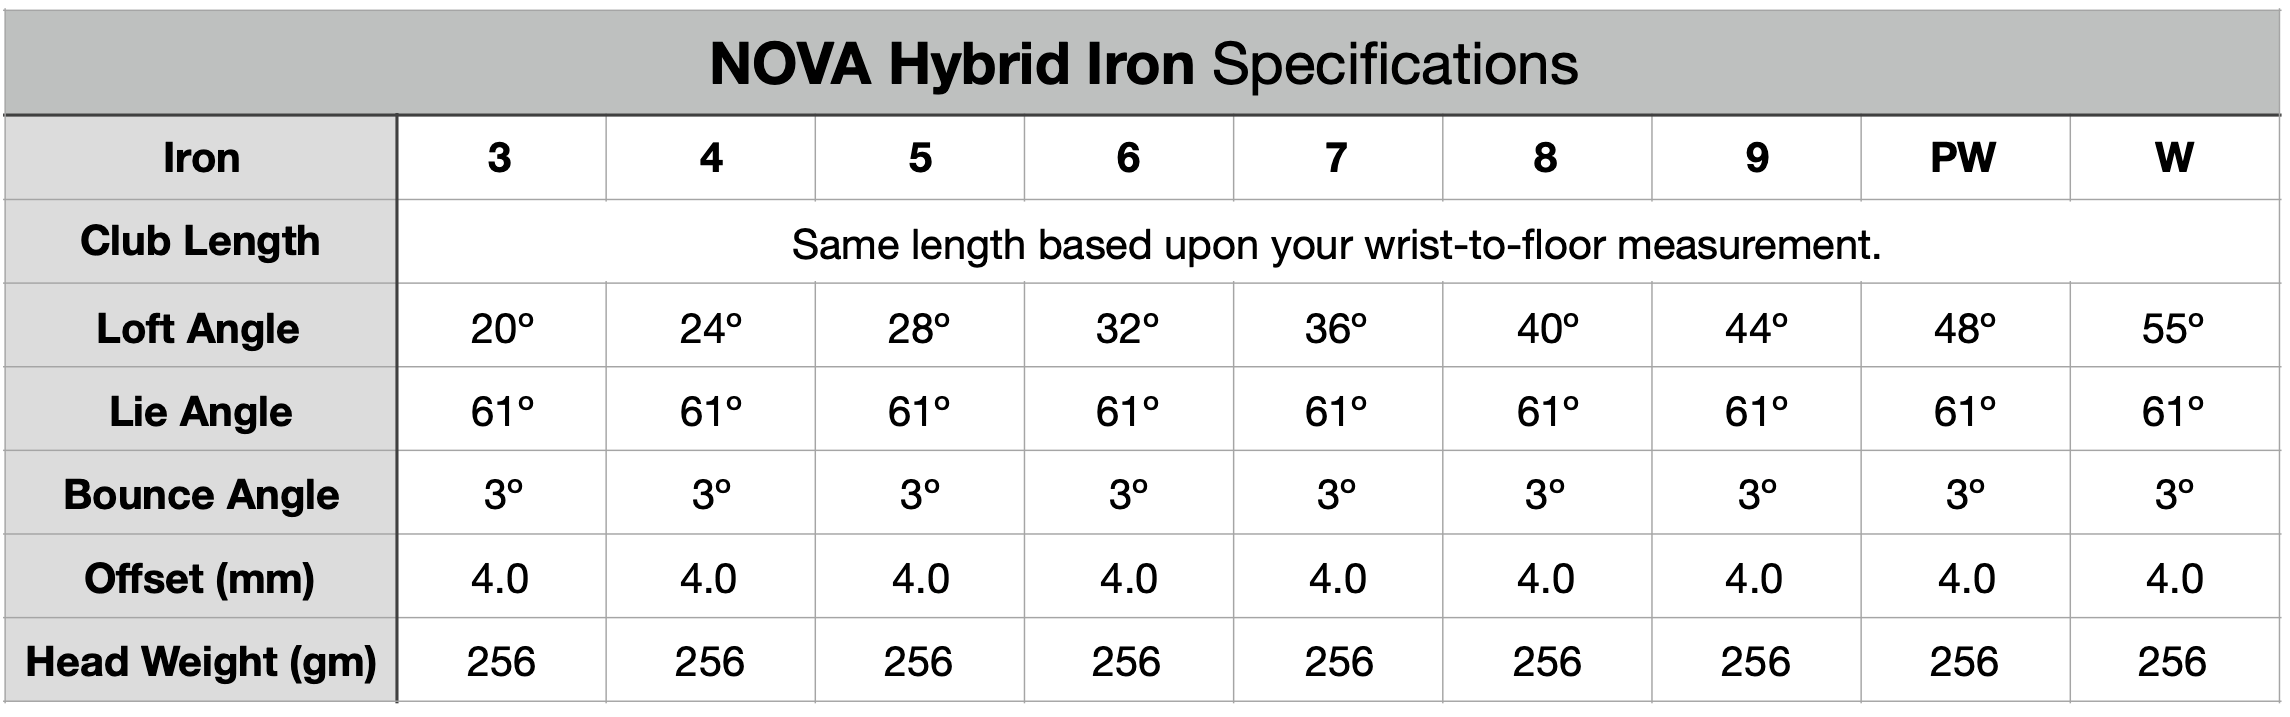 NOVA Hybrid Irons Specifications Chart